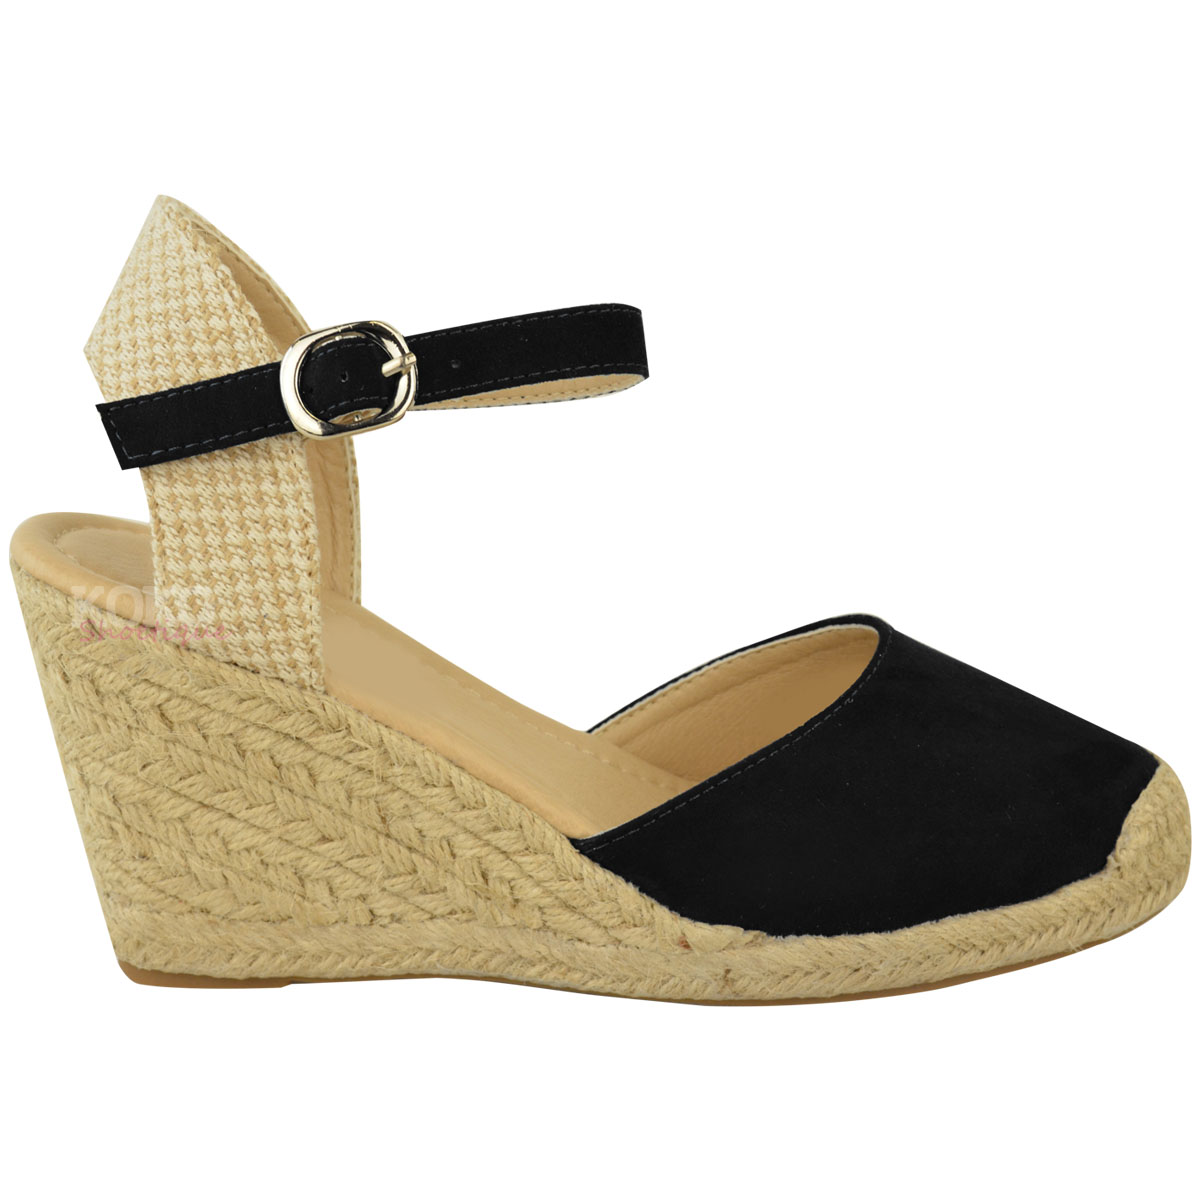 Runcati Womens Espadrille Wedge Platform Peep Toe Sandal Lace Up Summer Ankle Wrap Shoes Slingback Dress Shoes. by Runcati. $ - $ $ 18 $ 39 88 Prime. FREE Shipping on eligible orders. Some sizes/colors are Prime eligible. out of 5 .